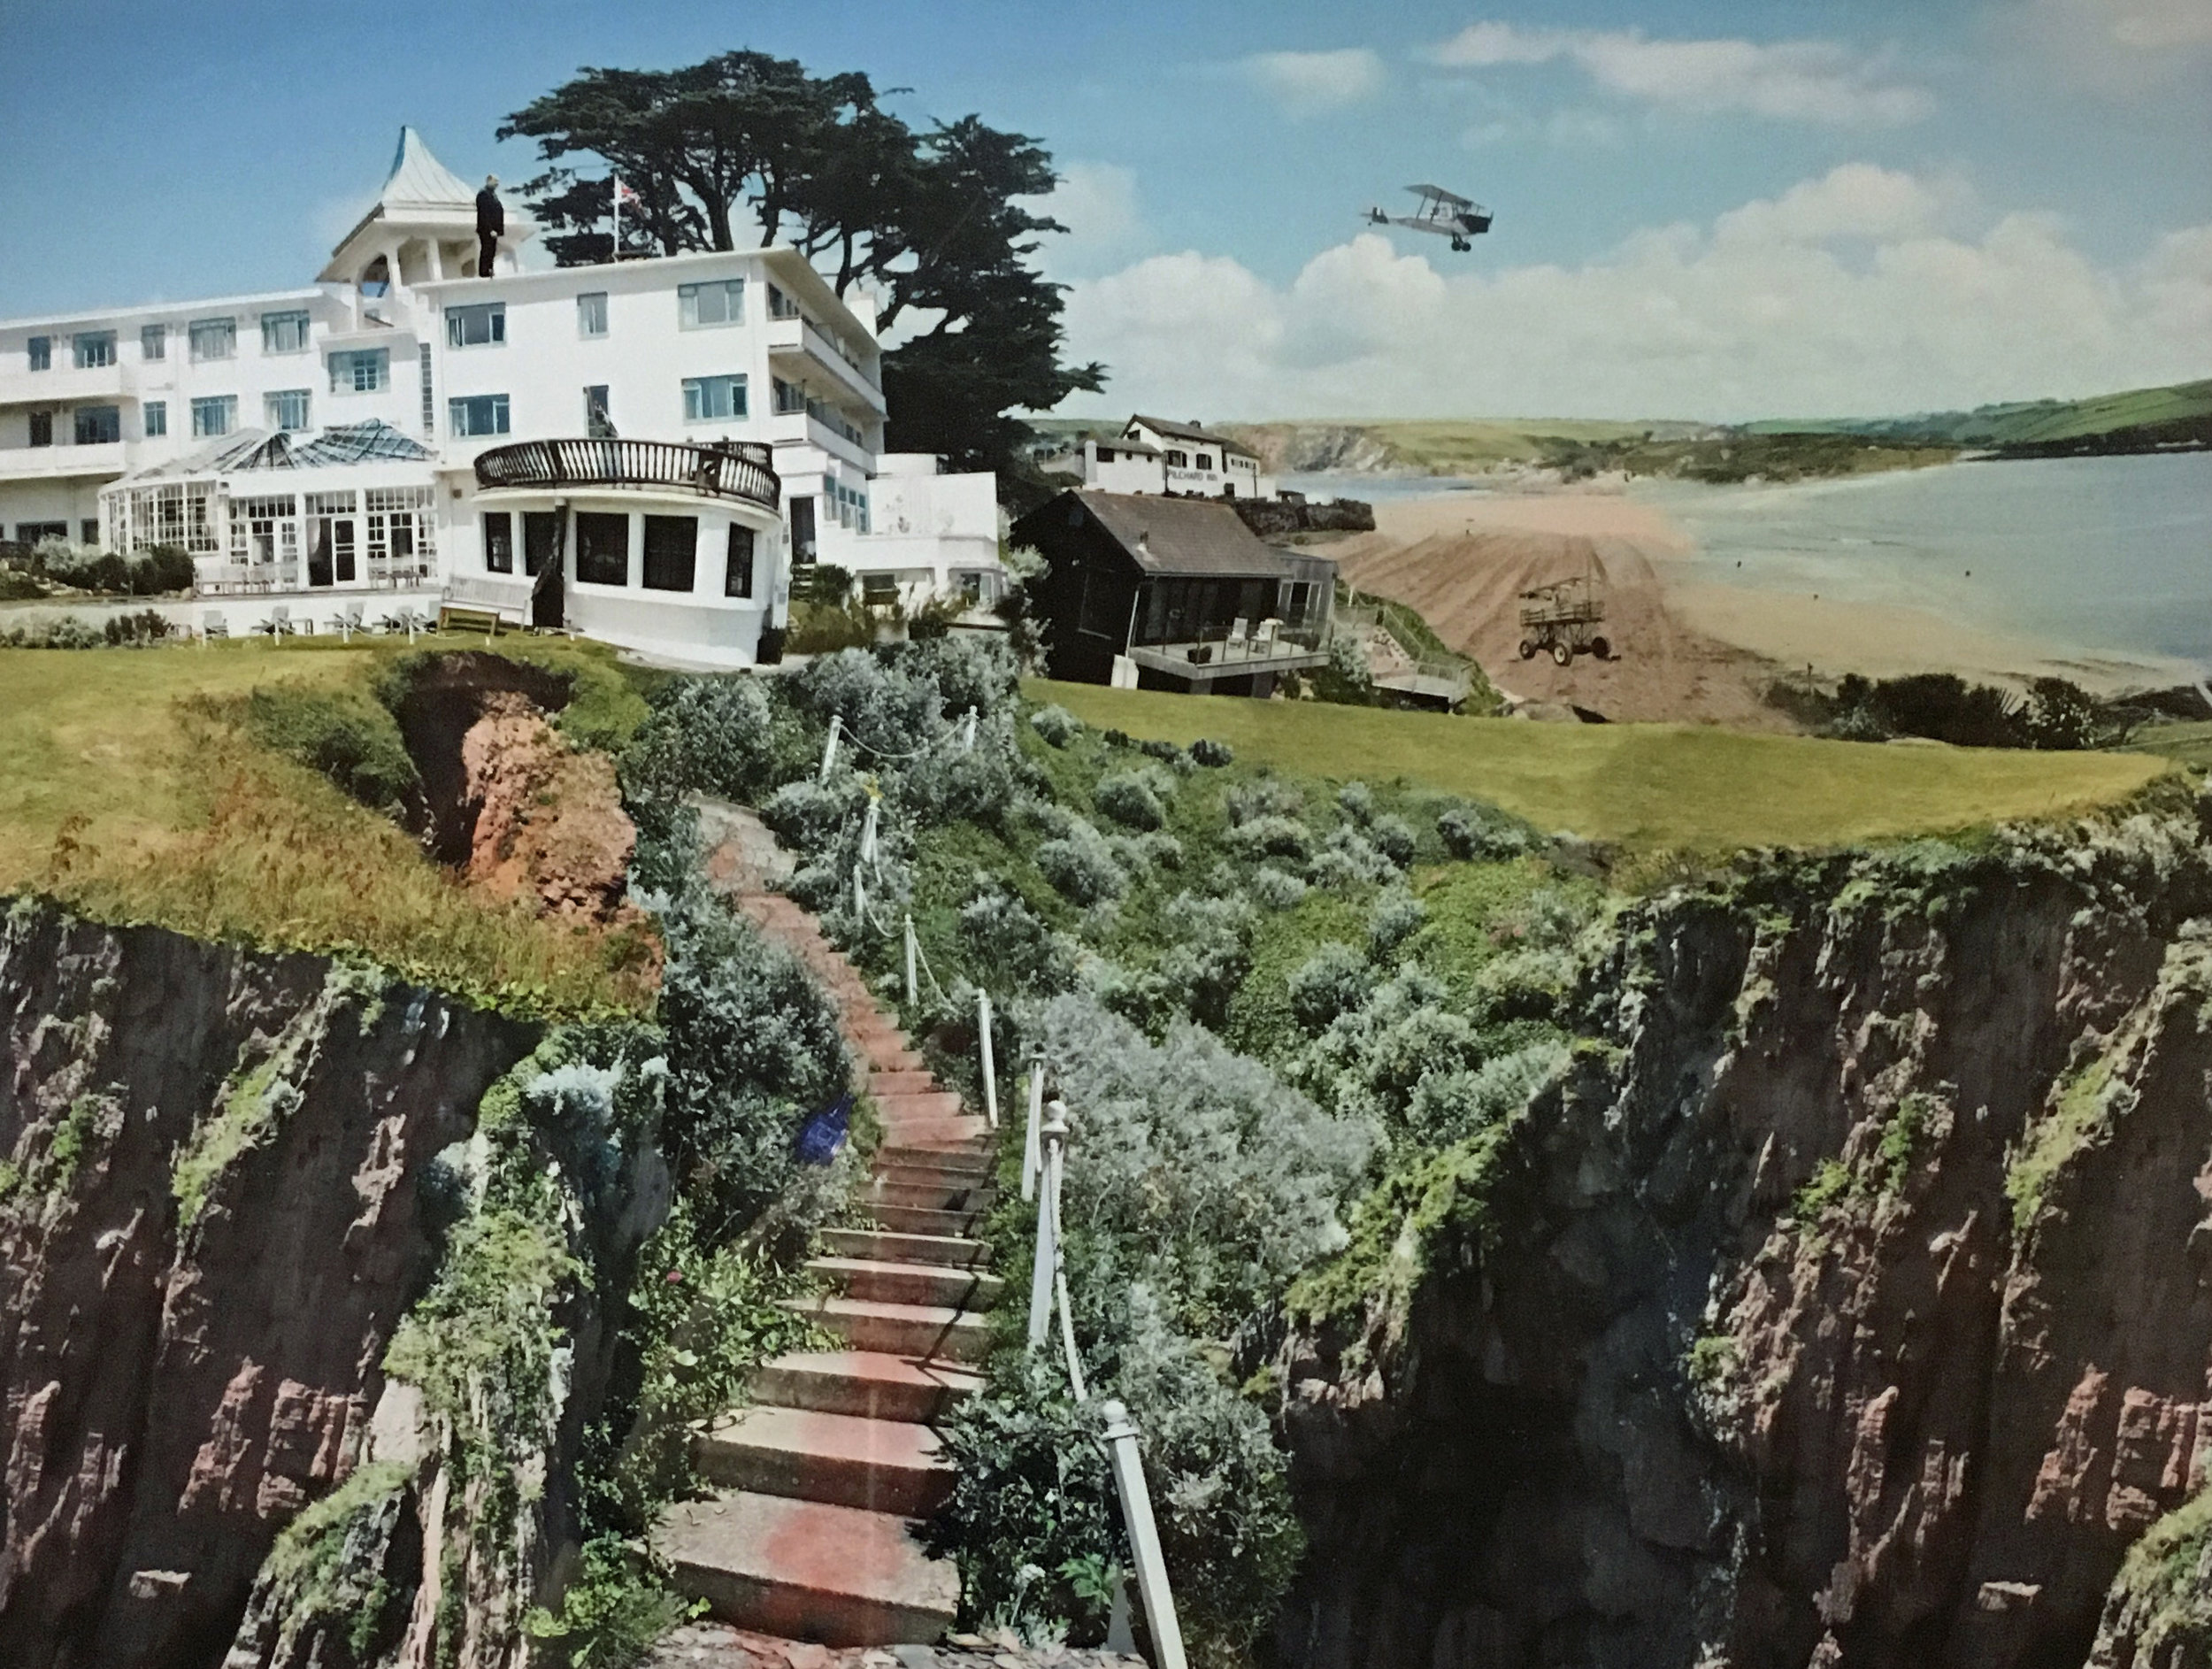 Ah, that's more like it! This vintage postcard of a hotel on the British coast makes me want to head to the seaside.